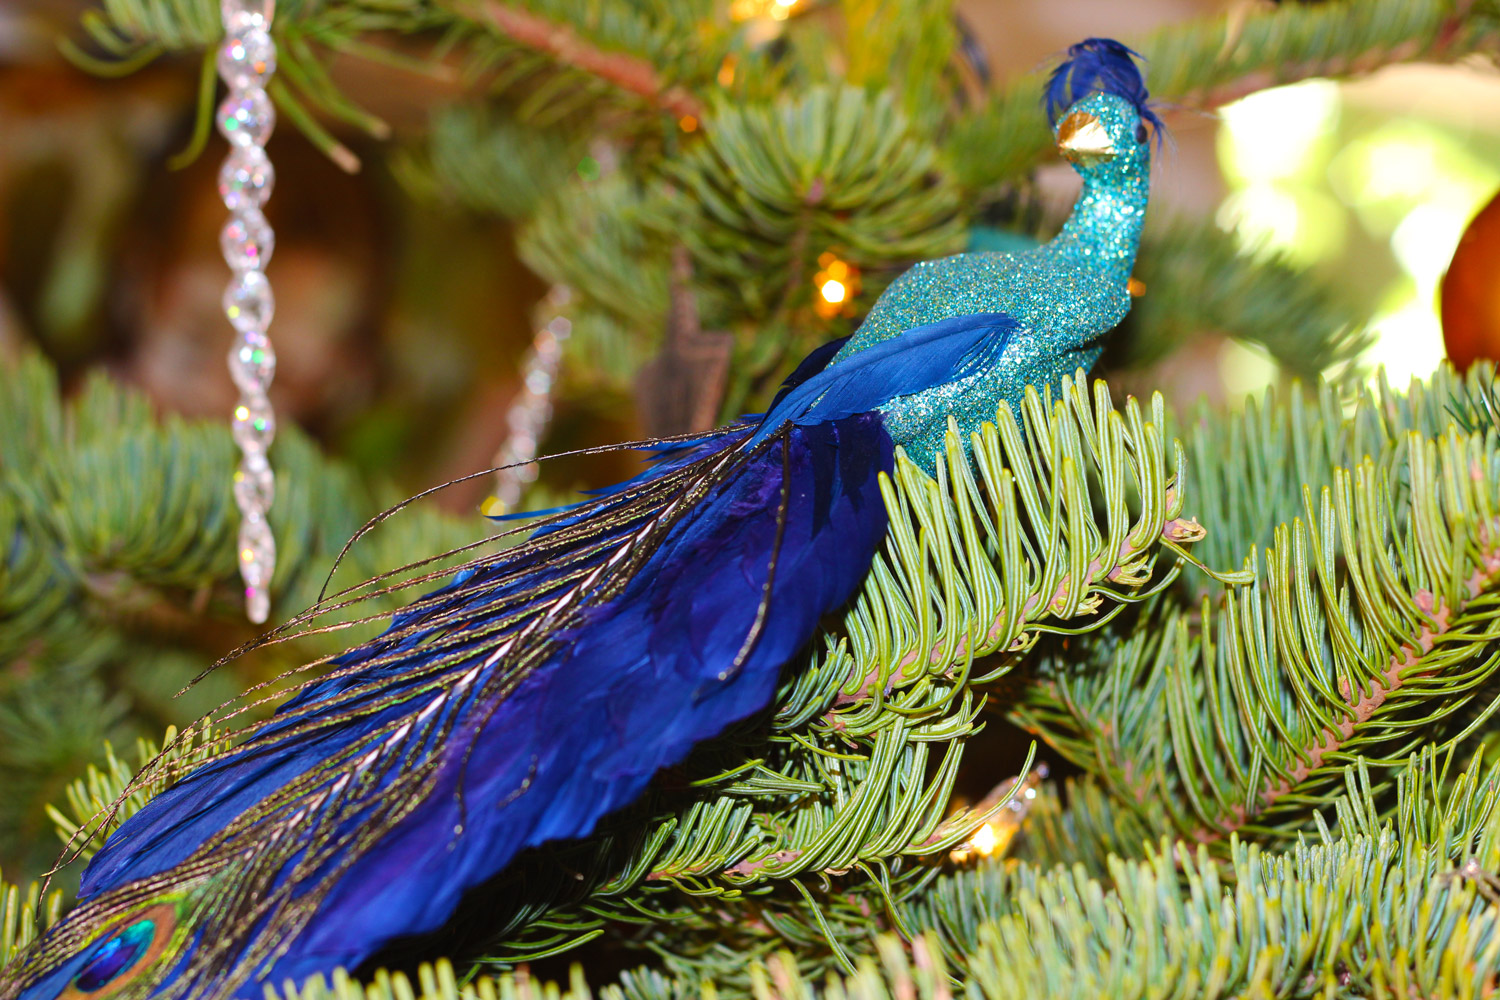 Find a roost for your peacock.